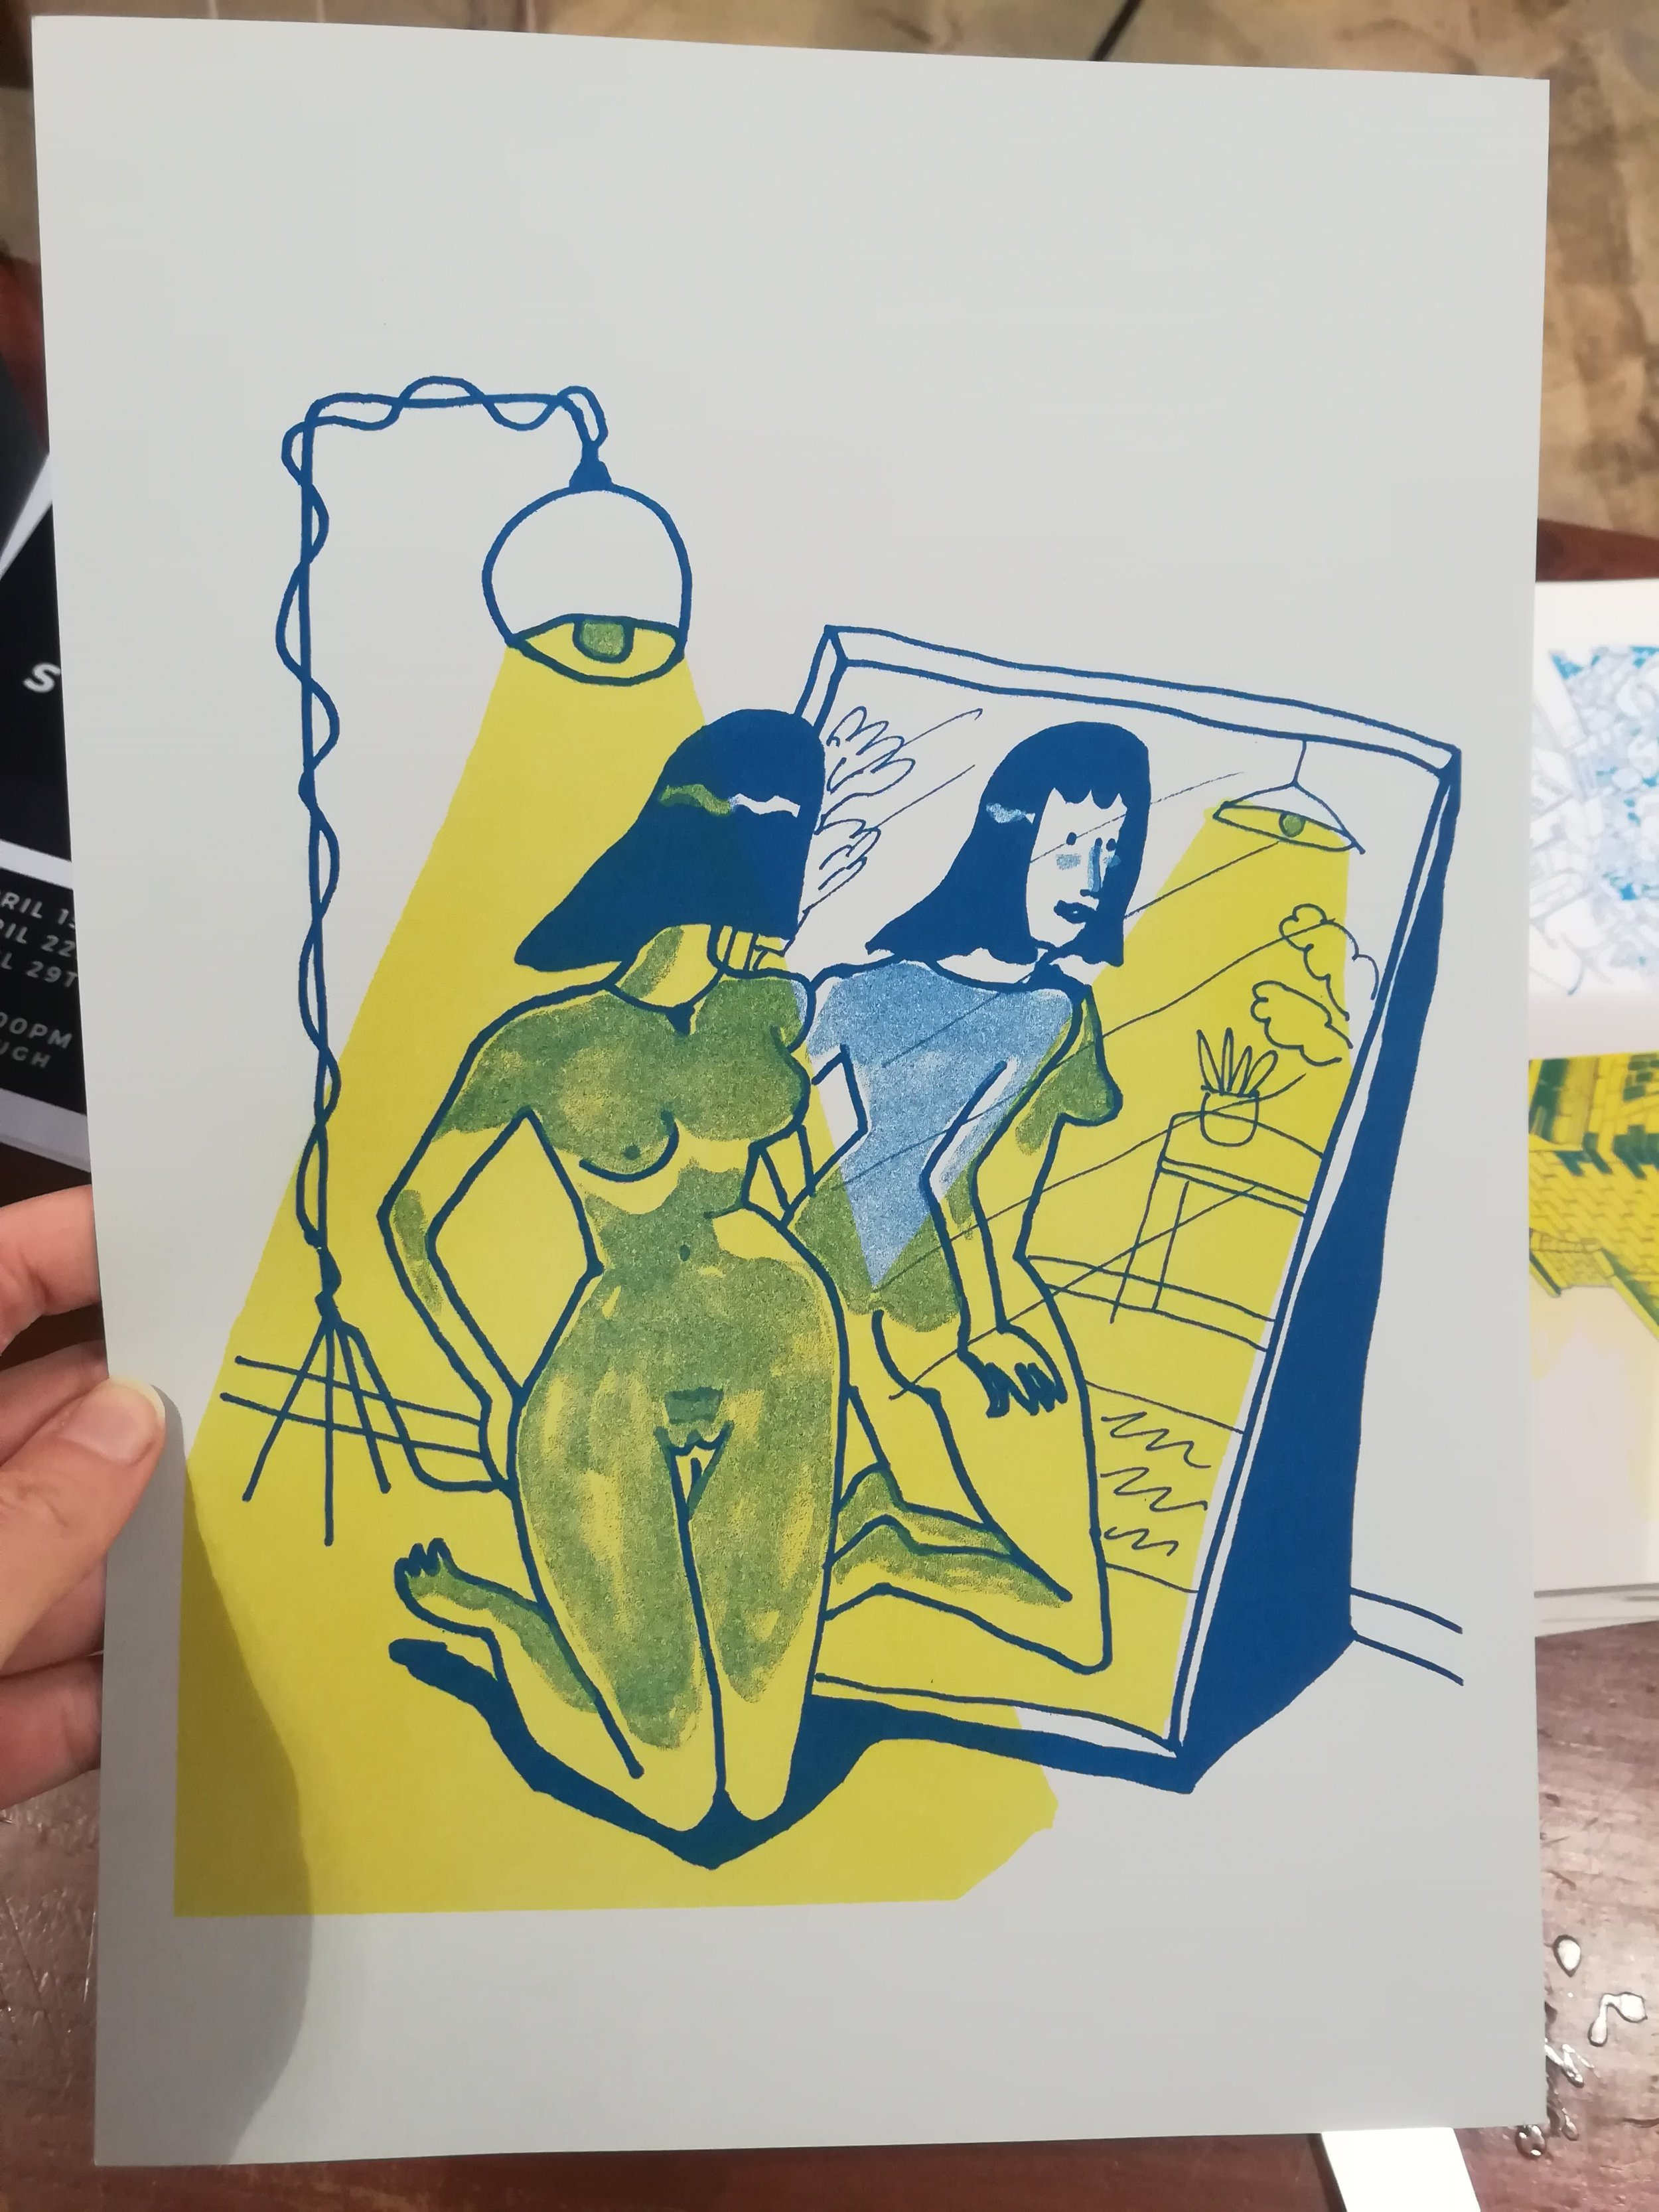 EMILIE WALSH : Emilie is a Melbourne-based artist, currently finishing her PhD at the Victorian College of the Arts. She works with a range of media, from comics and illustration to video, printmaking and 3D printing. Her illustrations have been published by  The Lifted Brow , and she self-published her first comic book in 2018 with Tree Paper Comics in Melbourne.